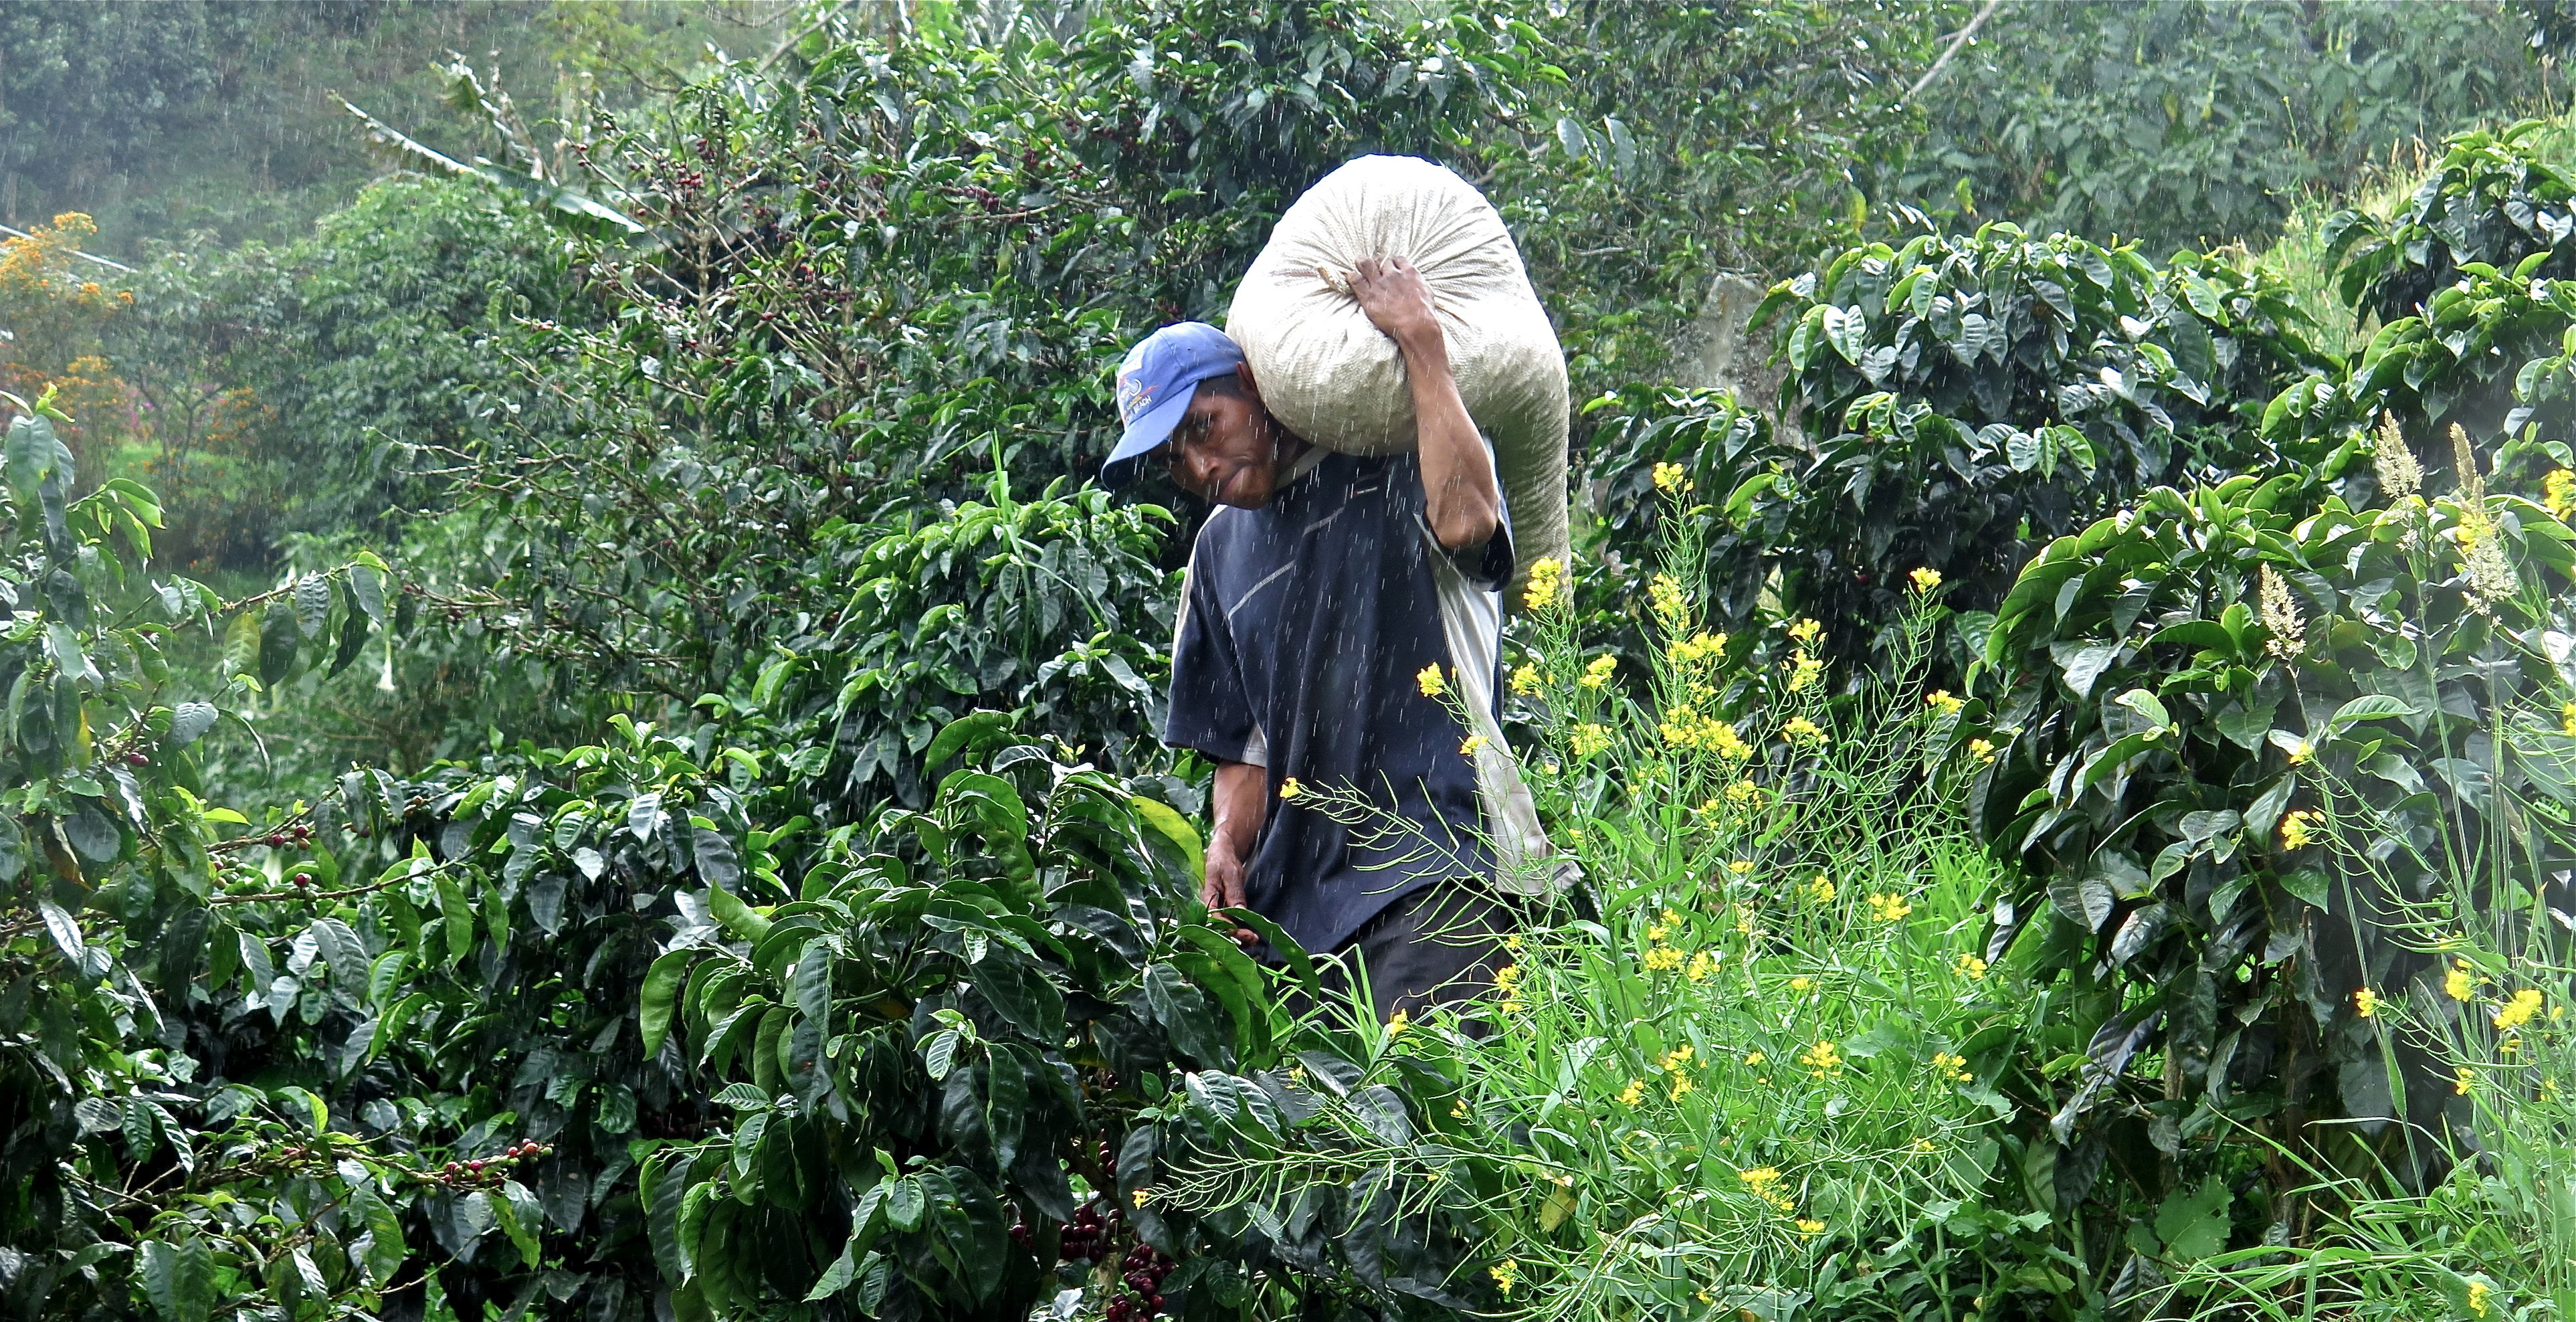 In a light rain, a worker shoulders a sack of harvested beans to be weighed. Photo/Keith Schneider